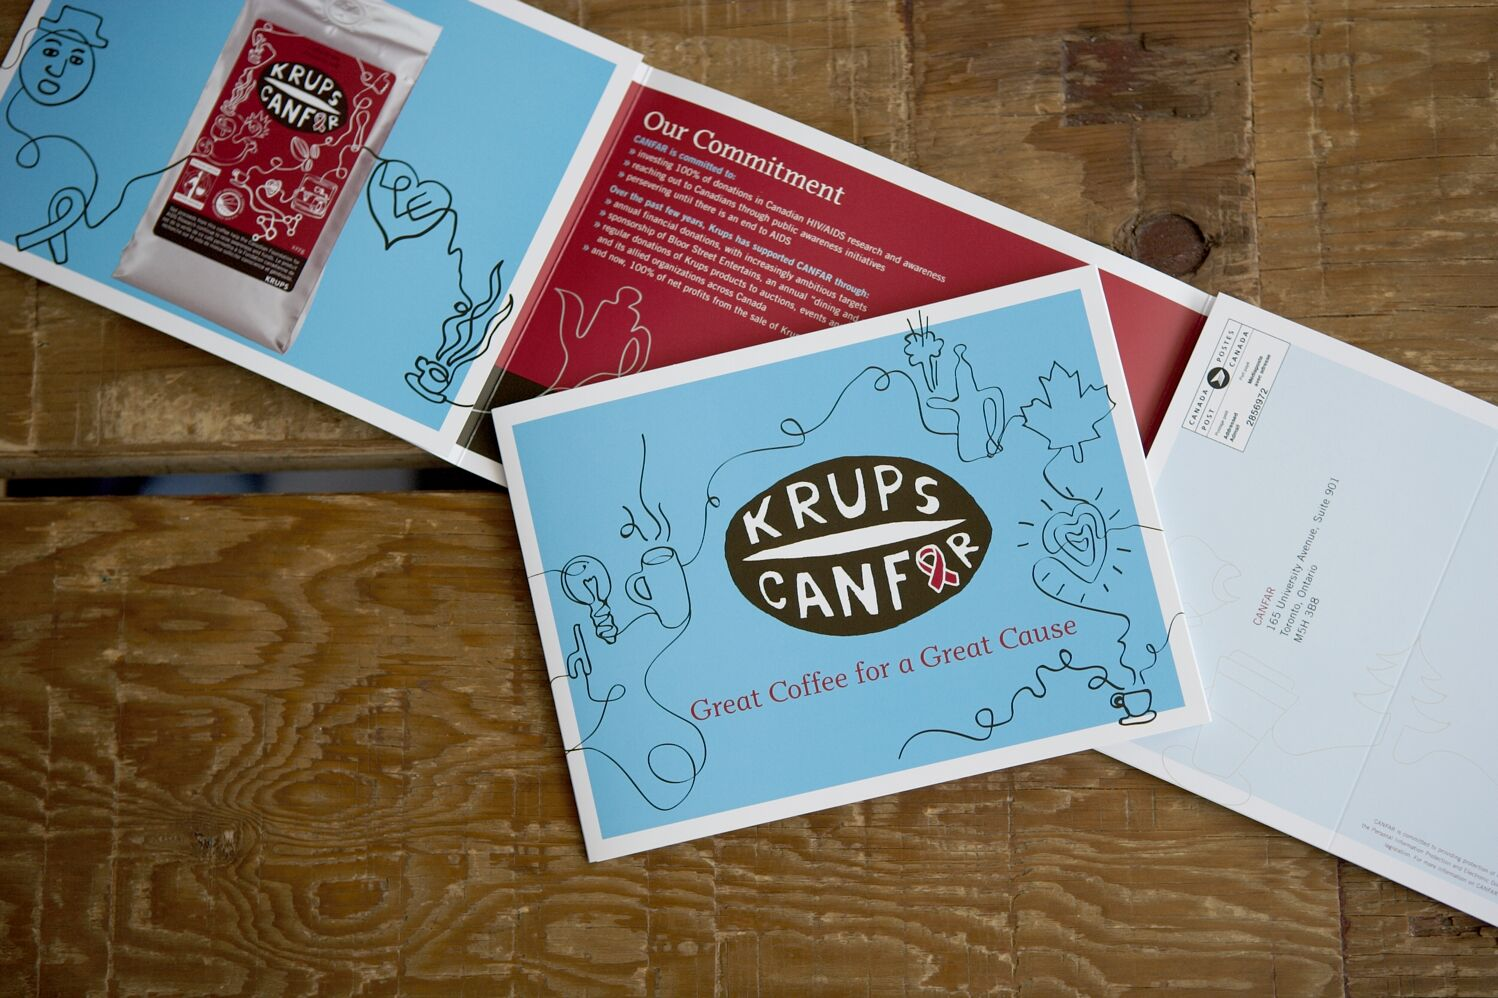 Krups / Canfar campaign with Viva Dolan